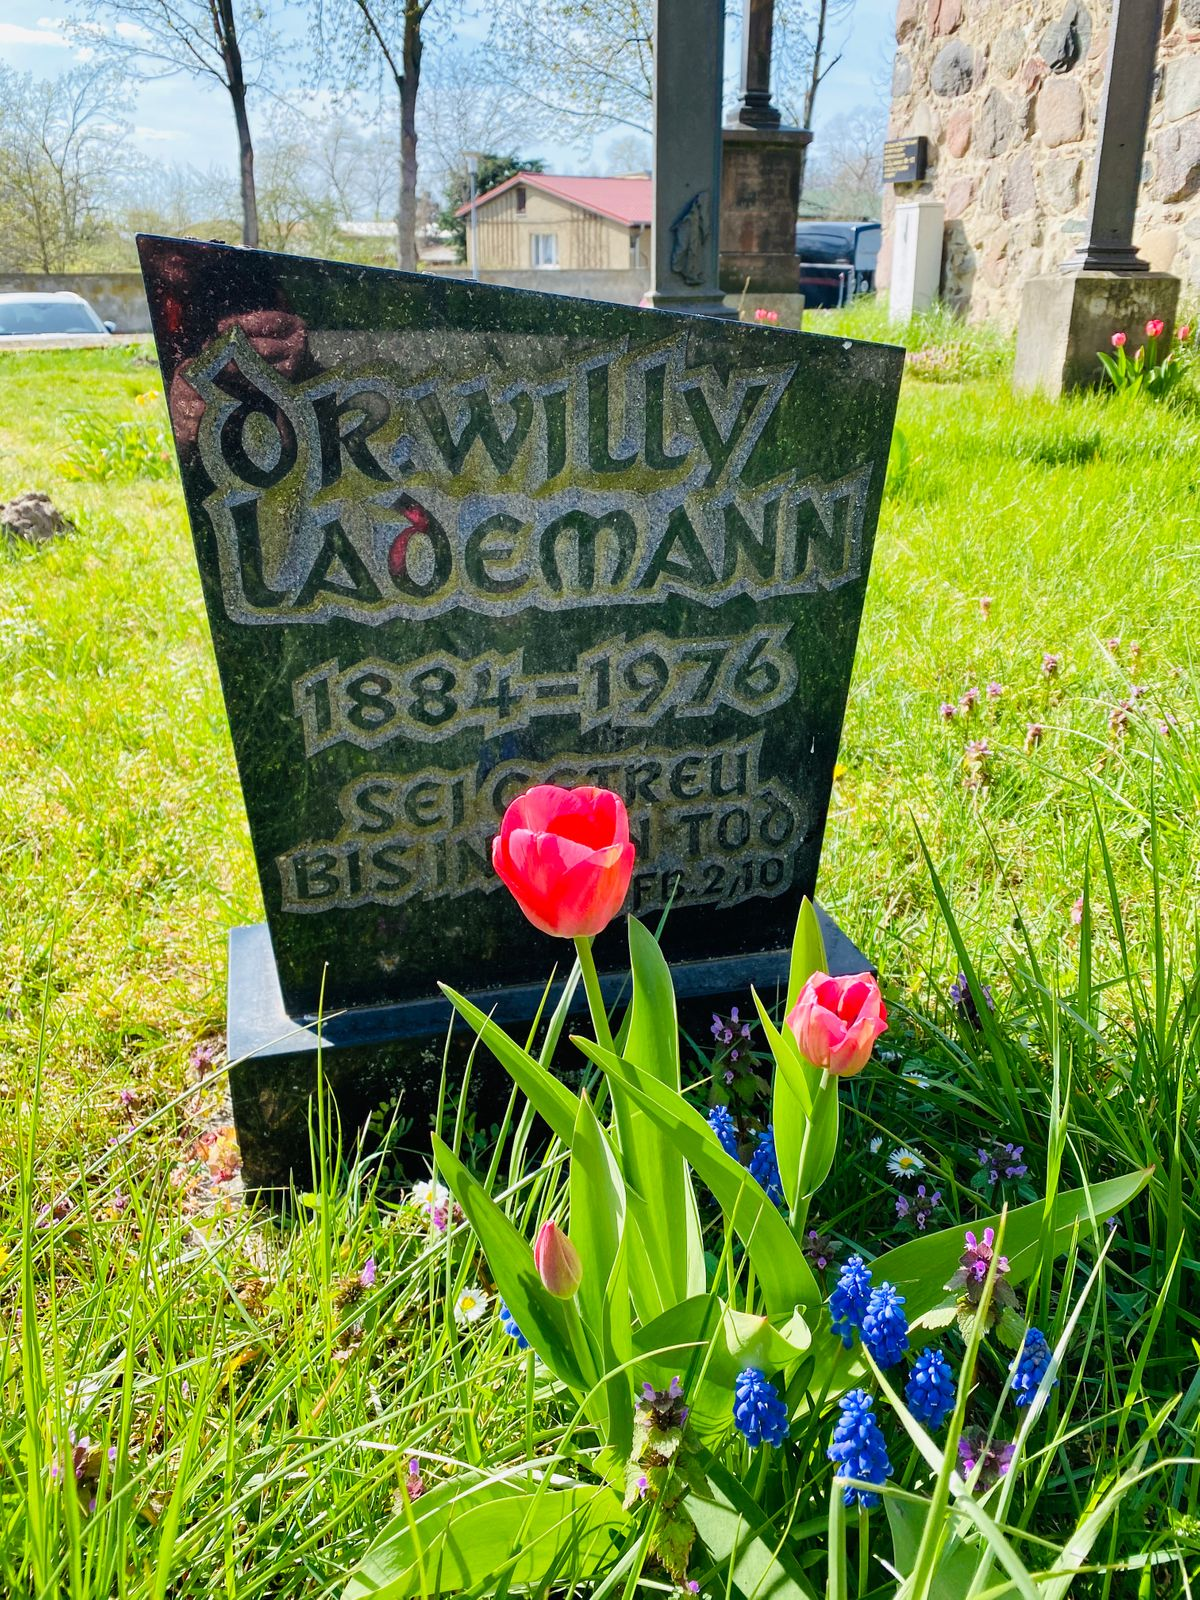 Grab Dr. Willy Lademann 1884-1976 in Jühnsdorf